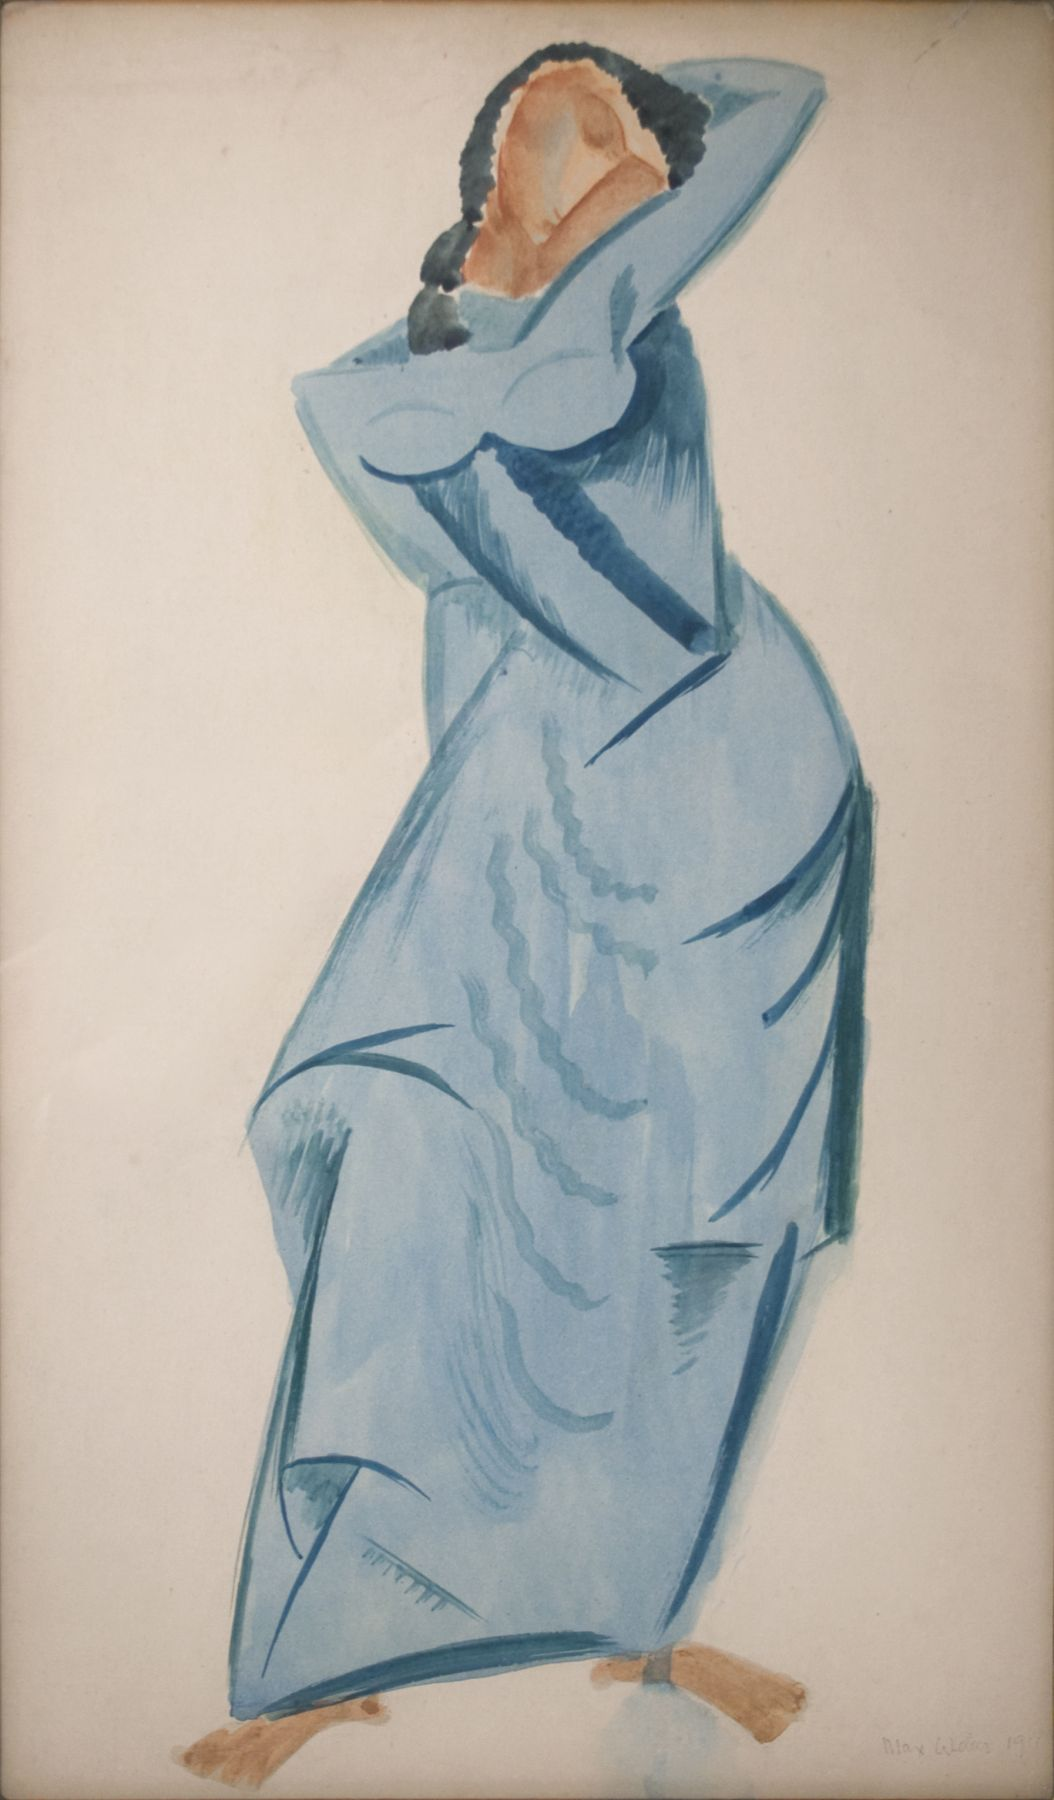 Max Weber, The Dancer (SOLD), 1911, watercolor, 22 1/4 x 14 inches